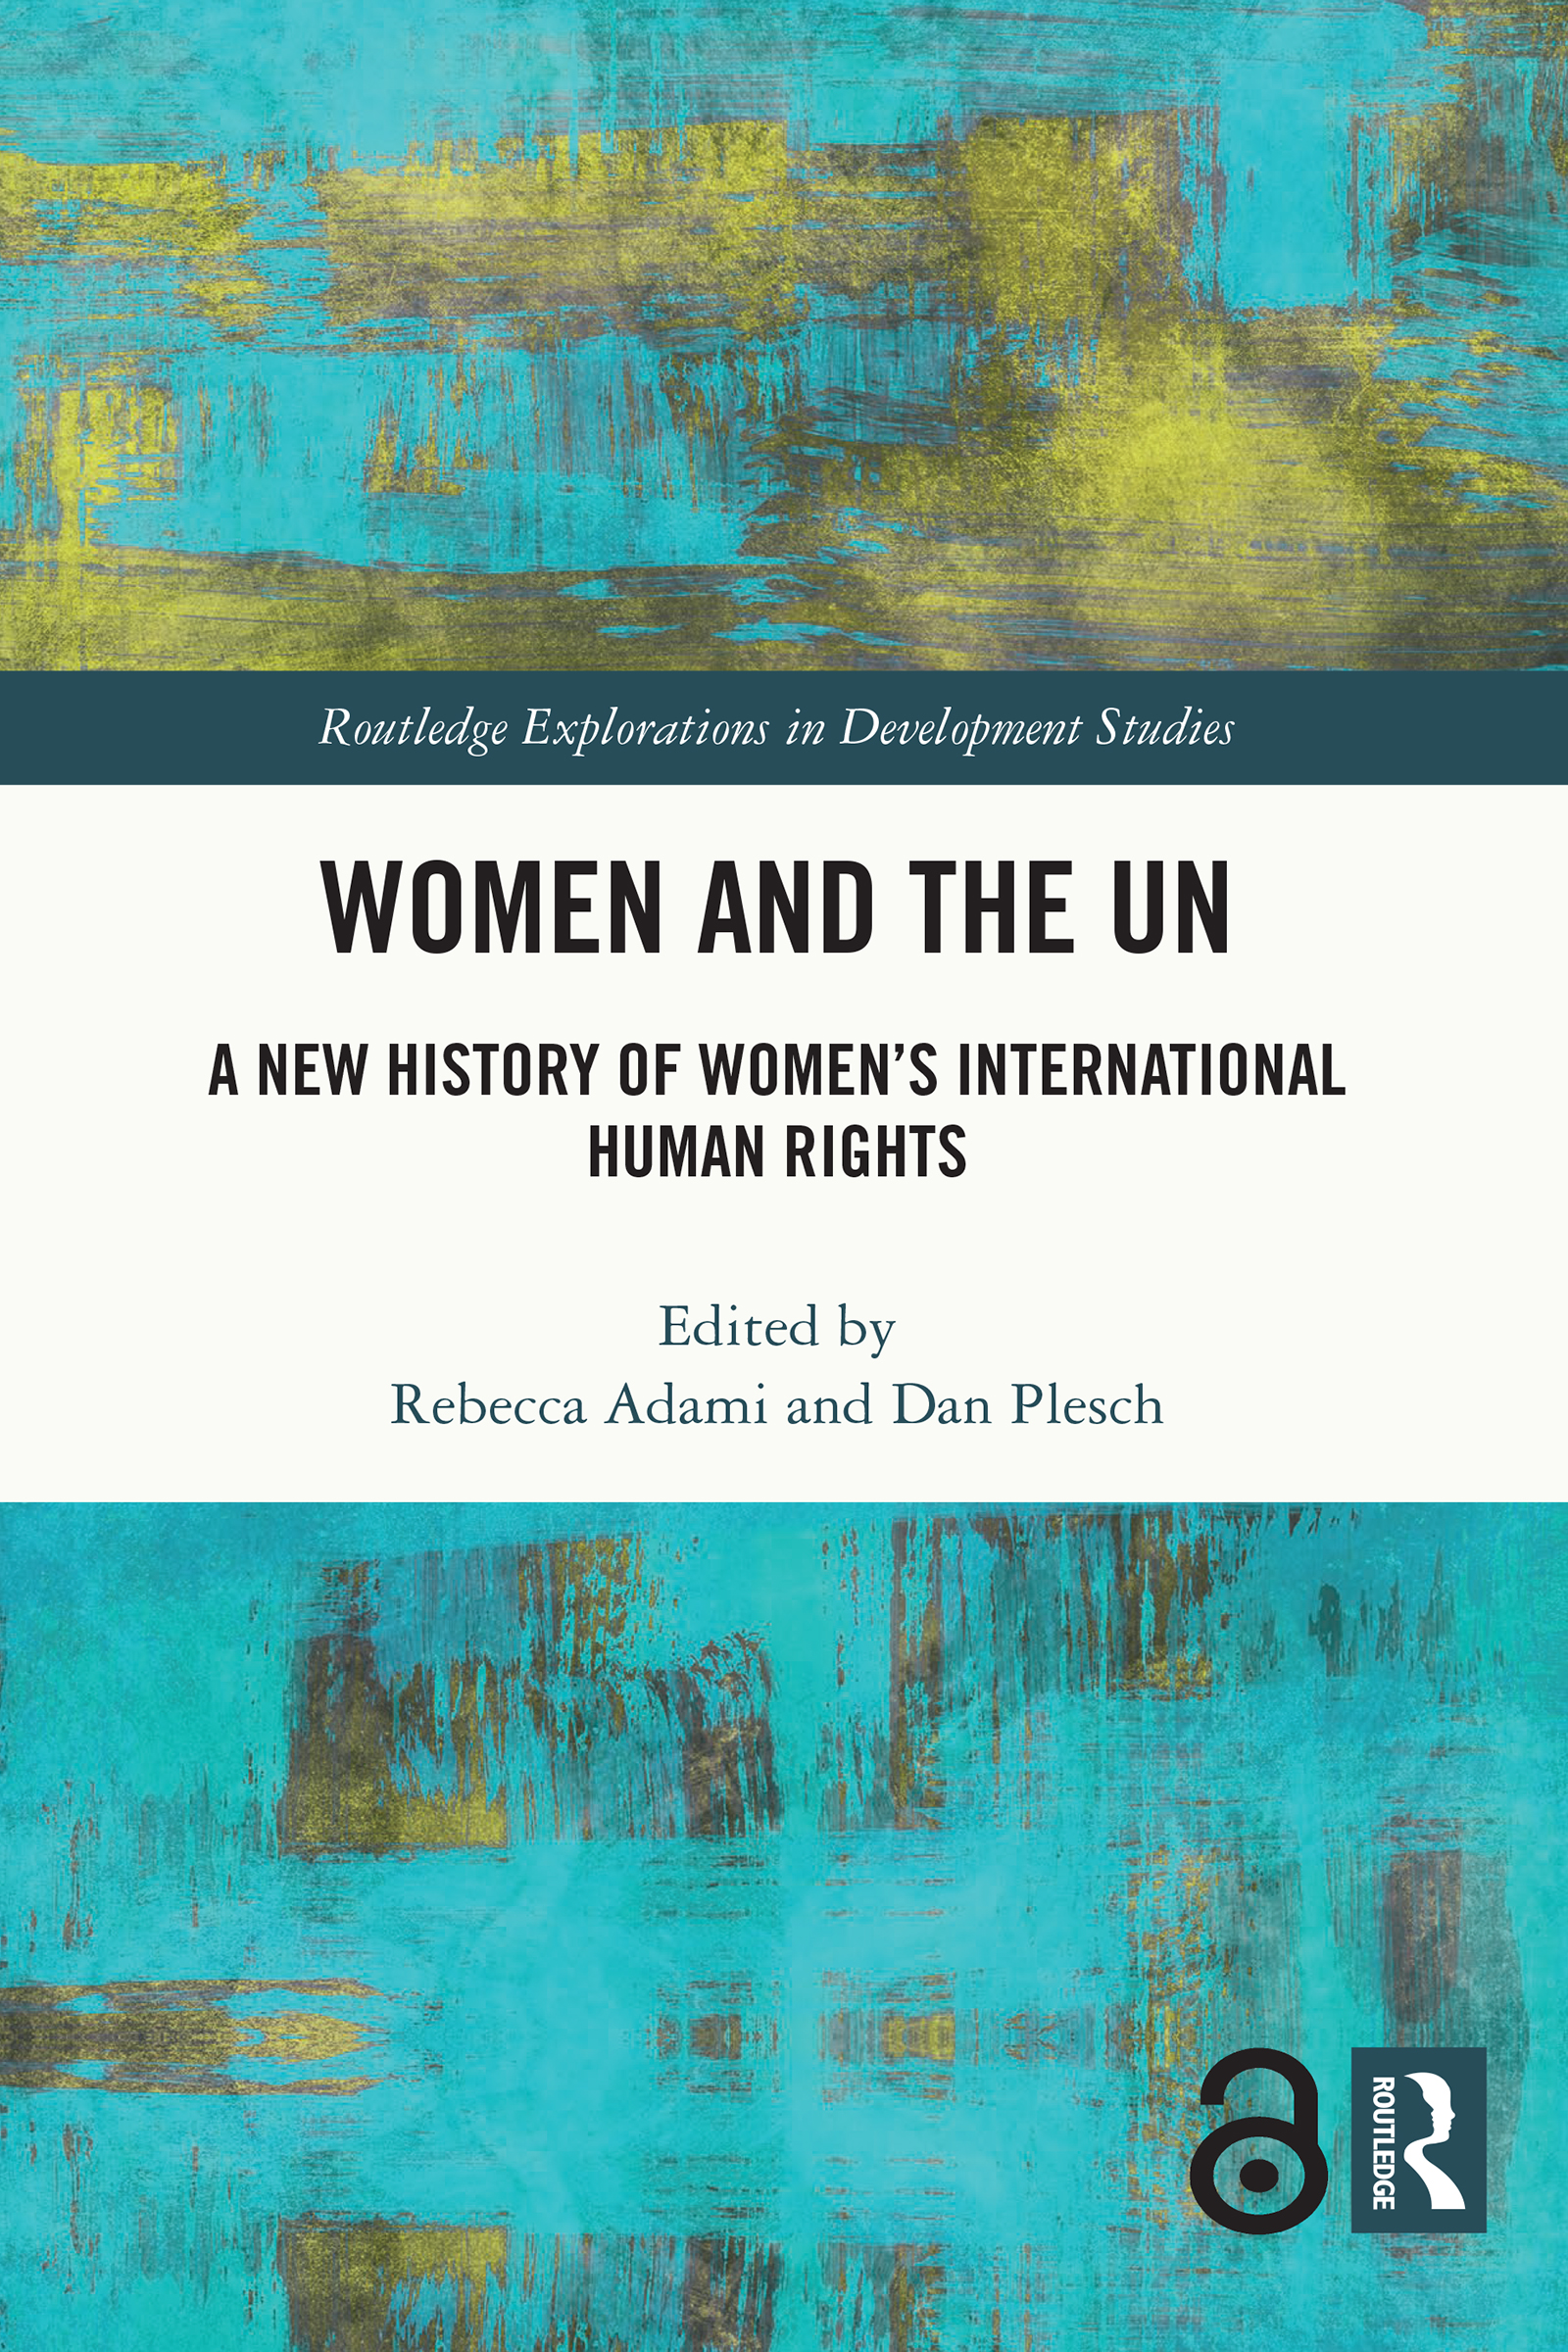 Universal human rights for women